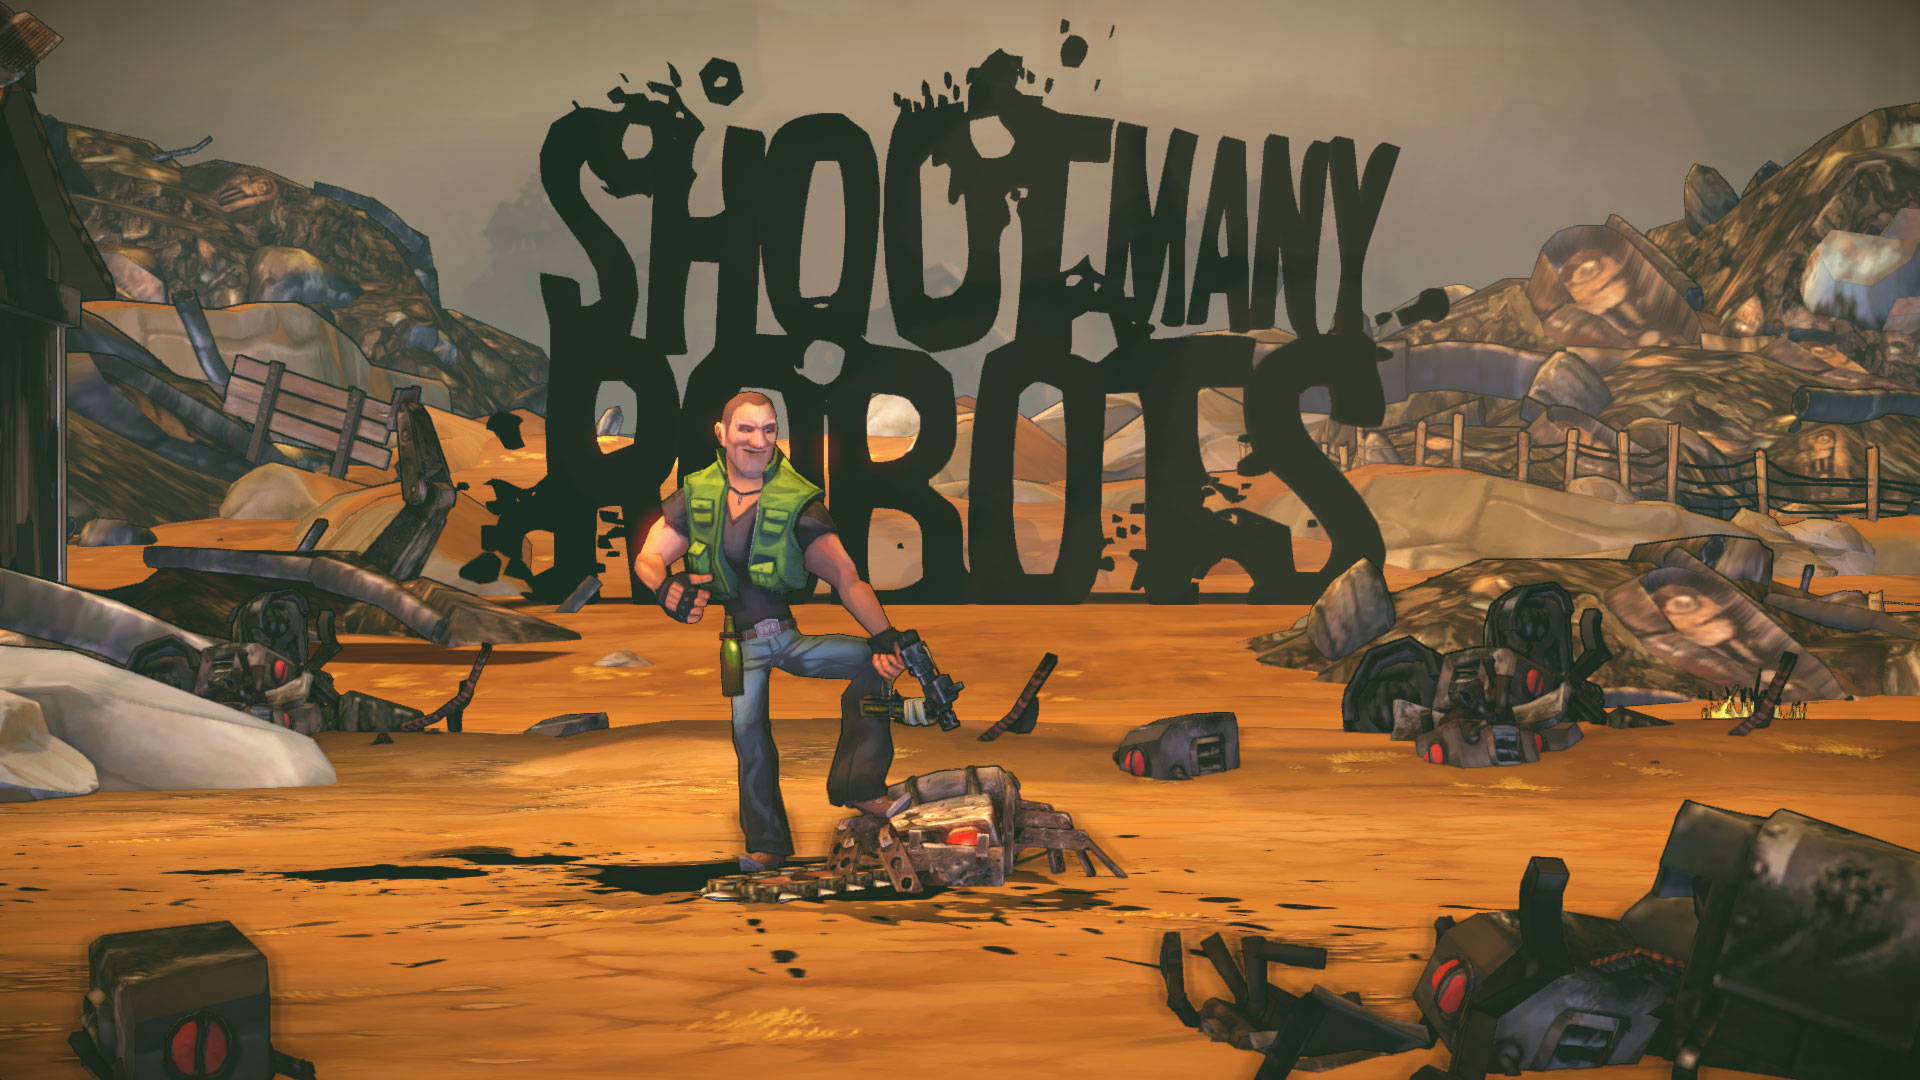 shoot many robots screenshot